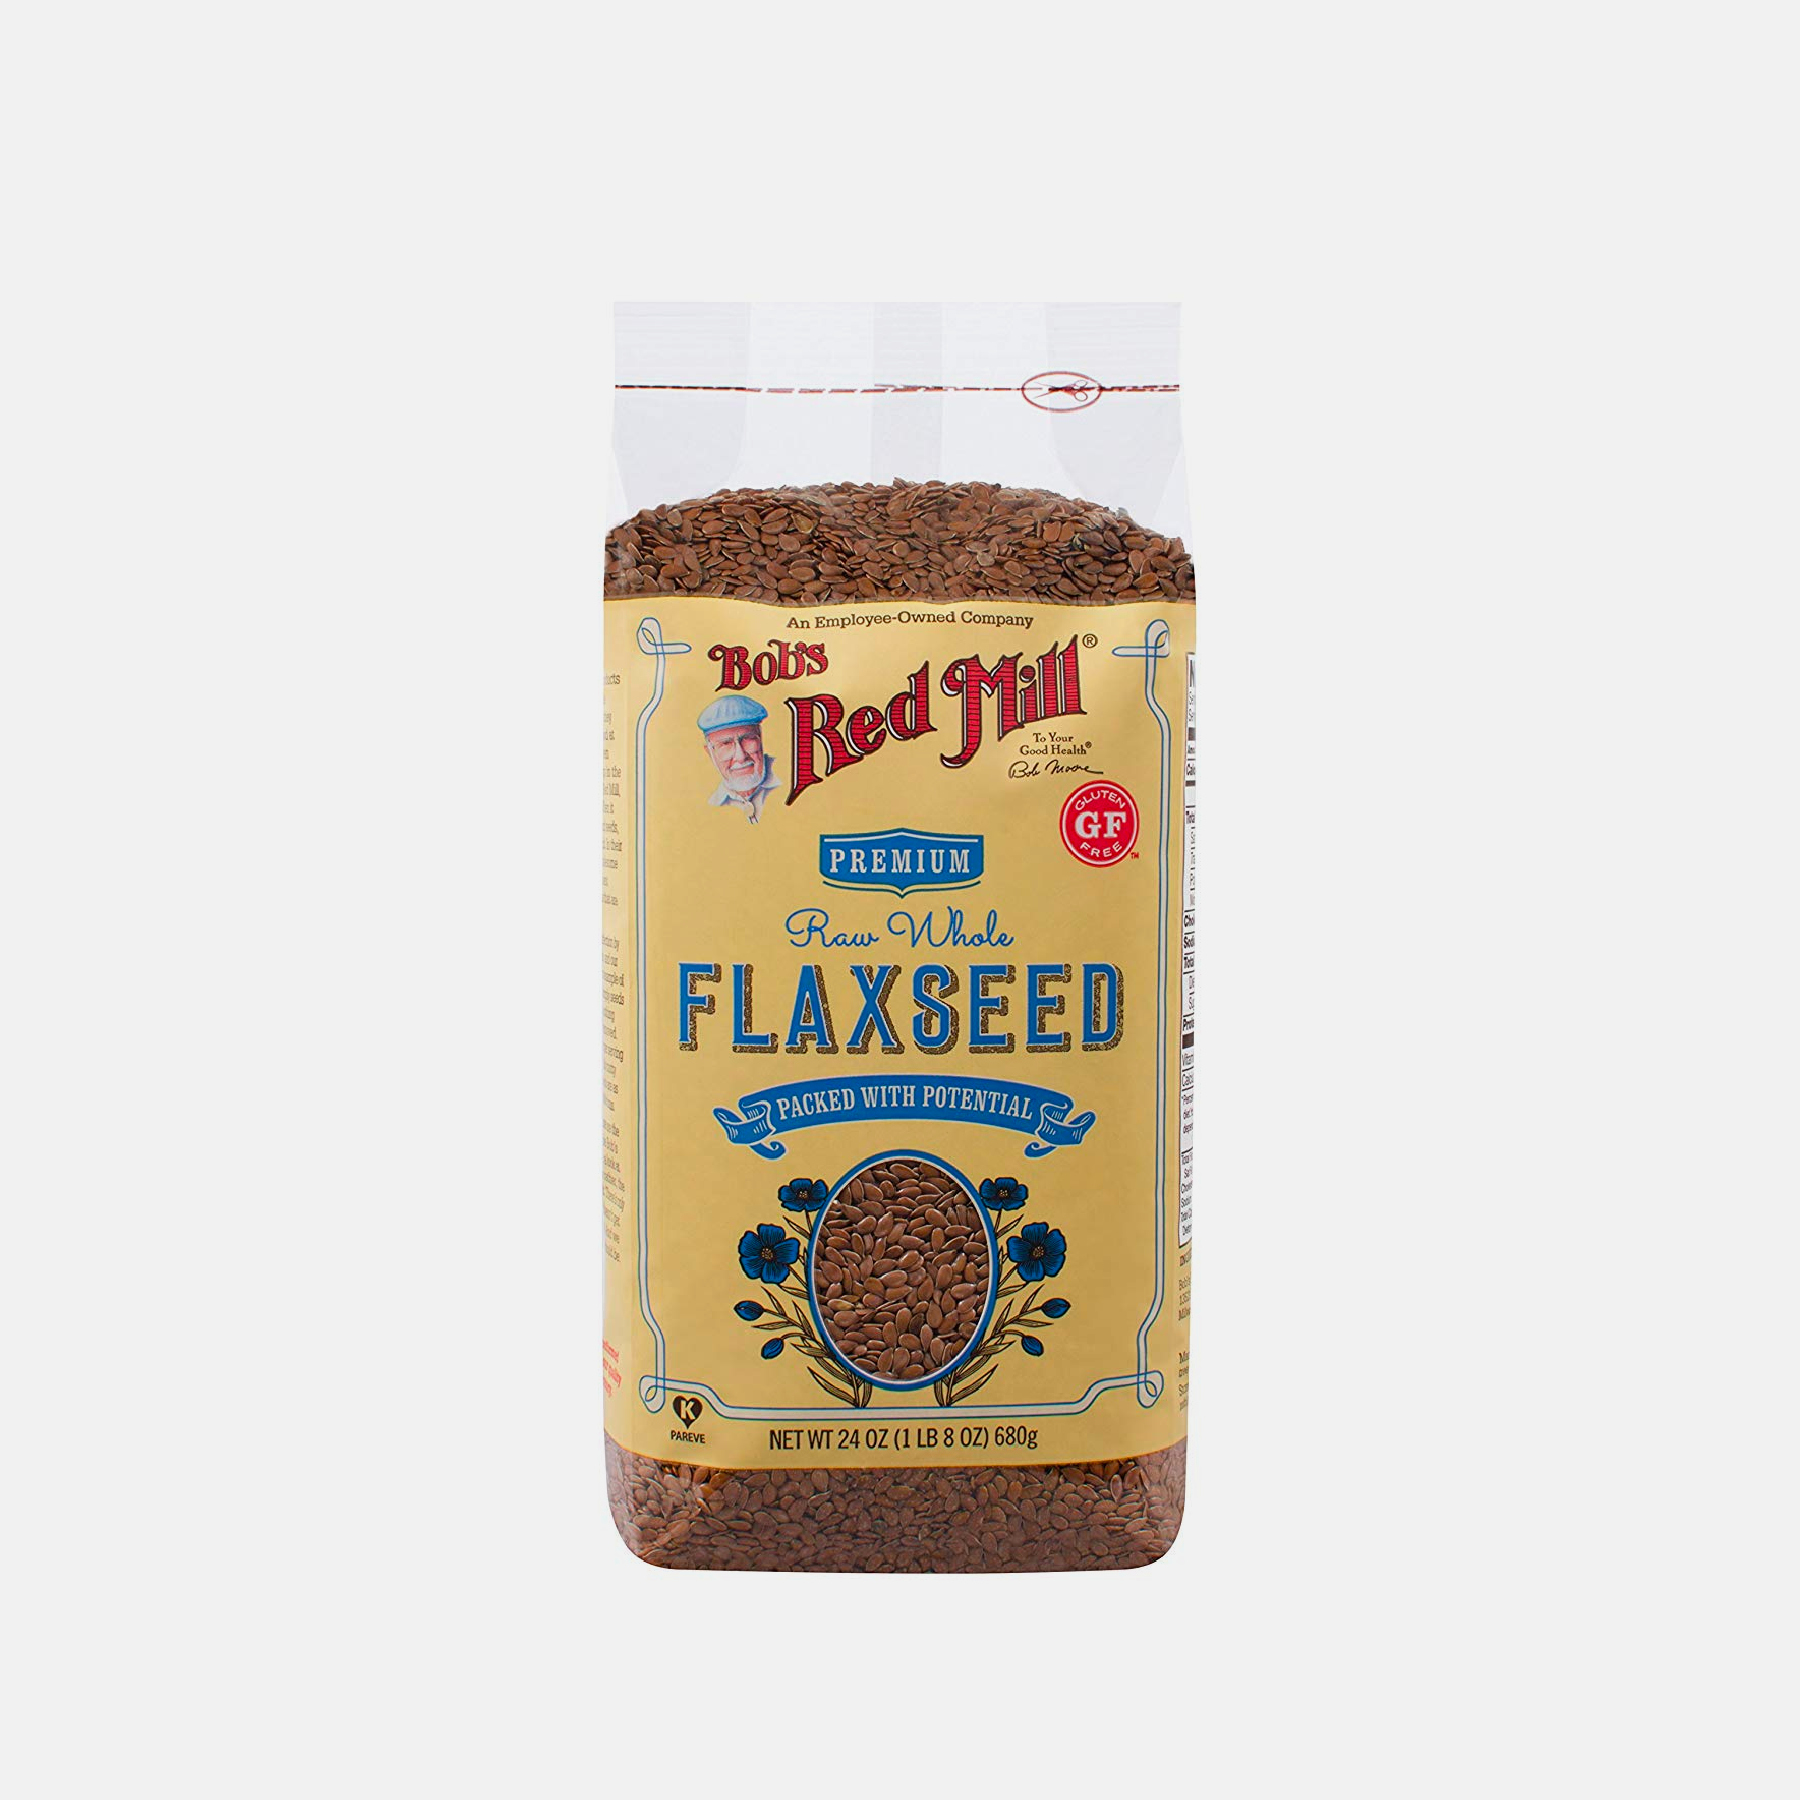 ALL-SORTS-OF-COCONUT-FLAKES